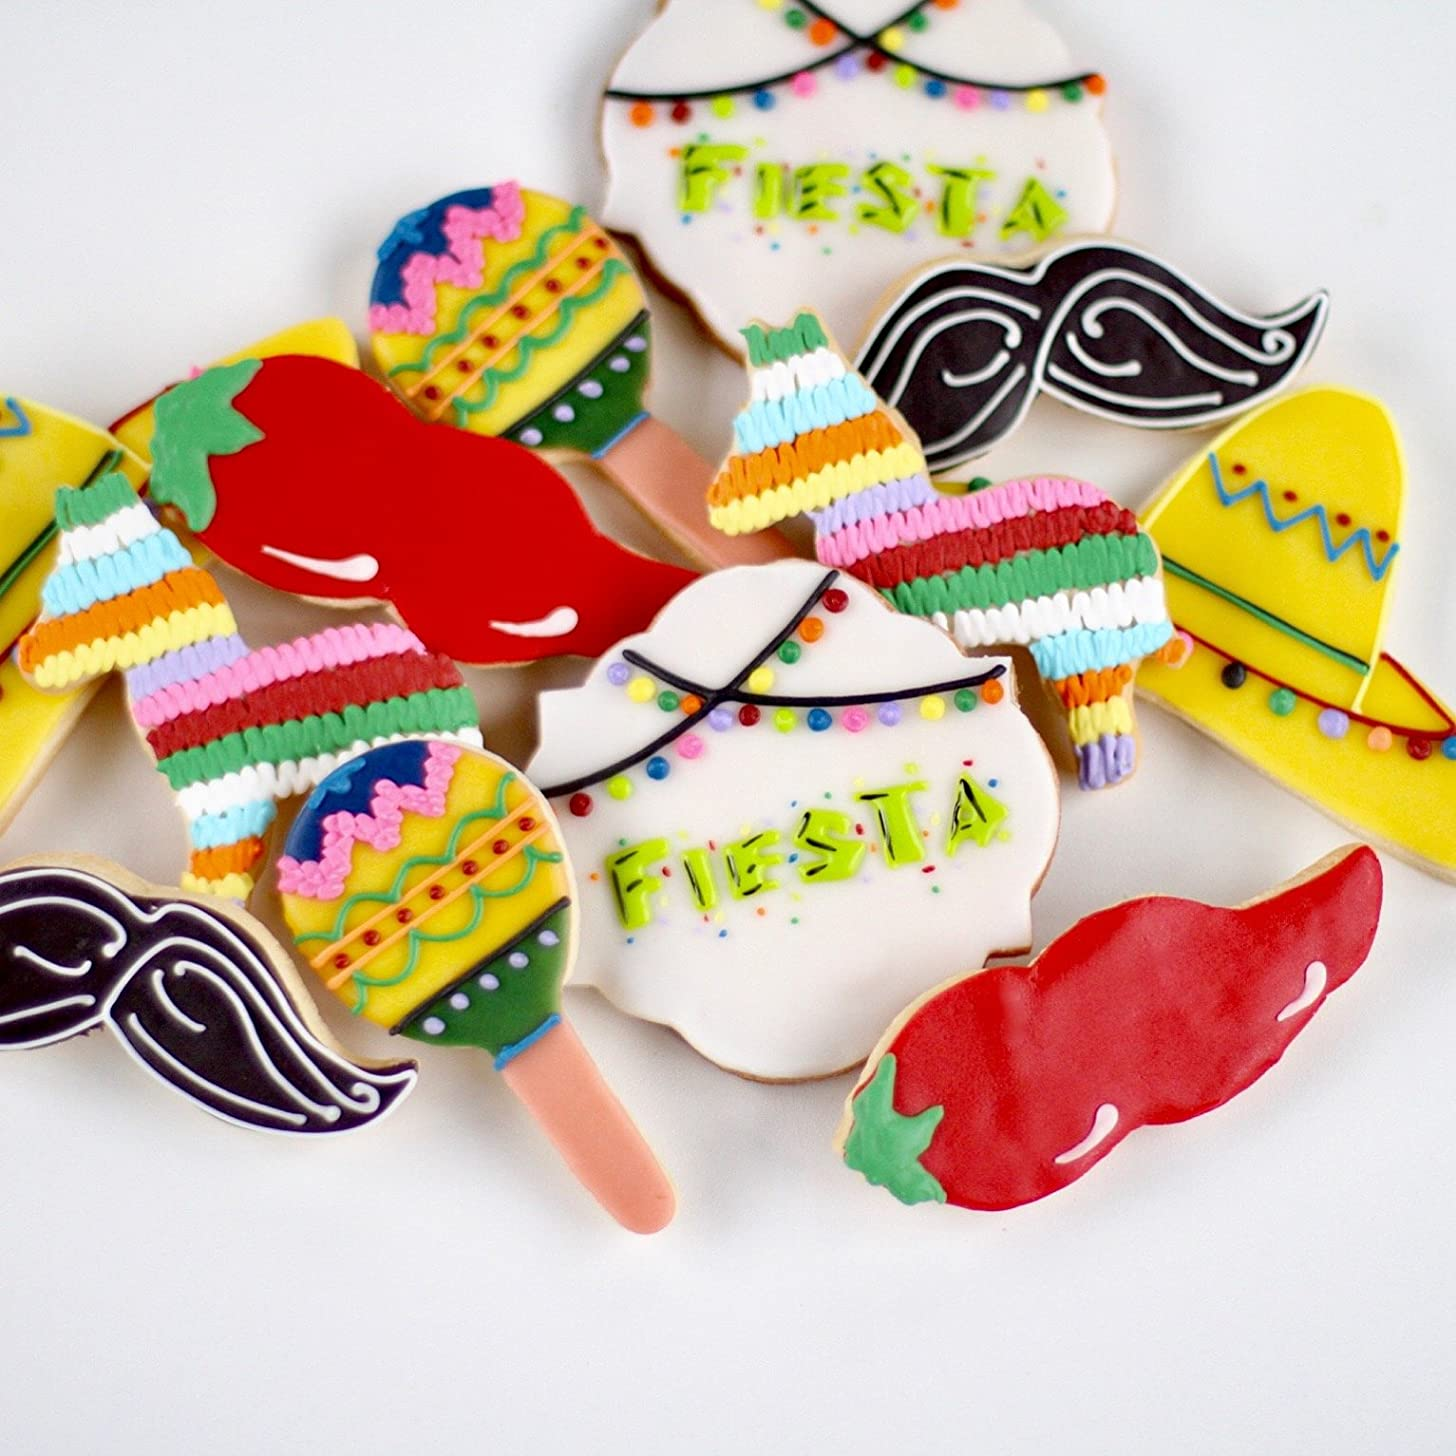 ? Dz. Its a FIESTA Cookies! Spice it up with Maracas and Chili Peppers Cookies! Mexican, Cinco De Mayo, Baby Shower, Fiesta Birthday Theme Party Favors!